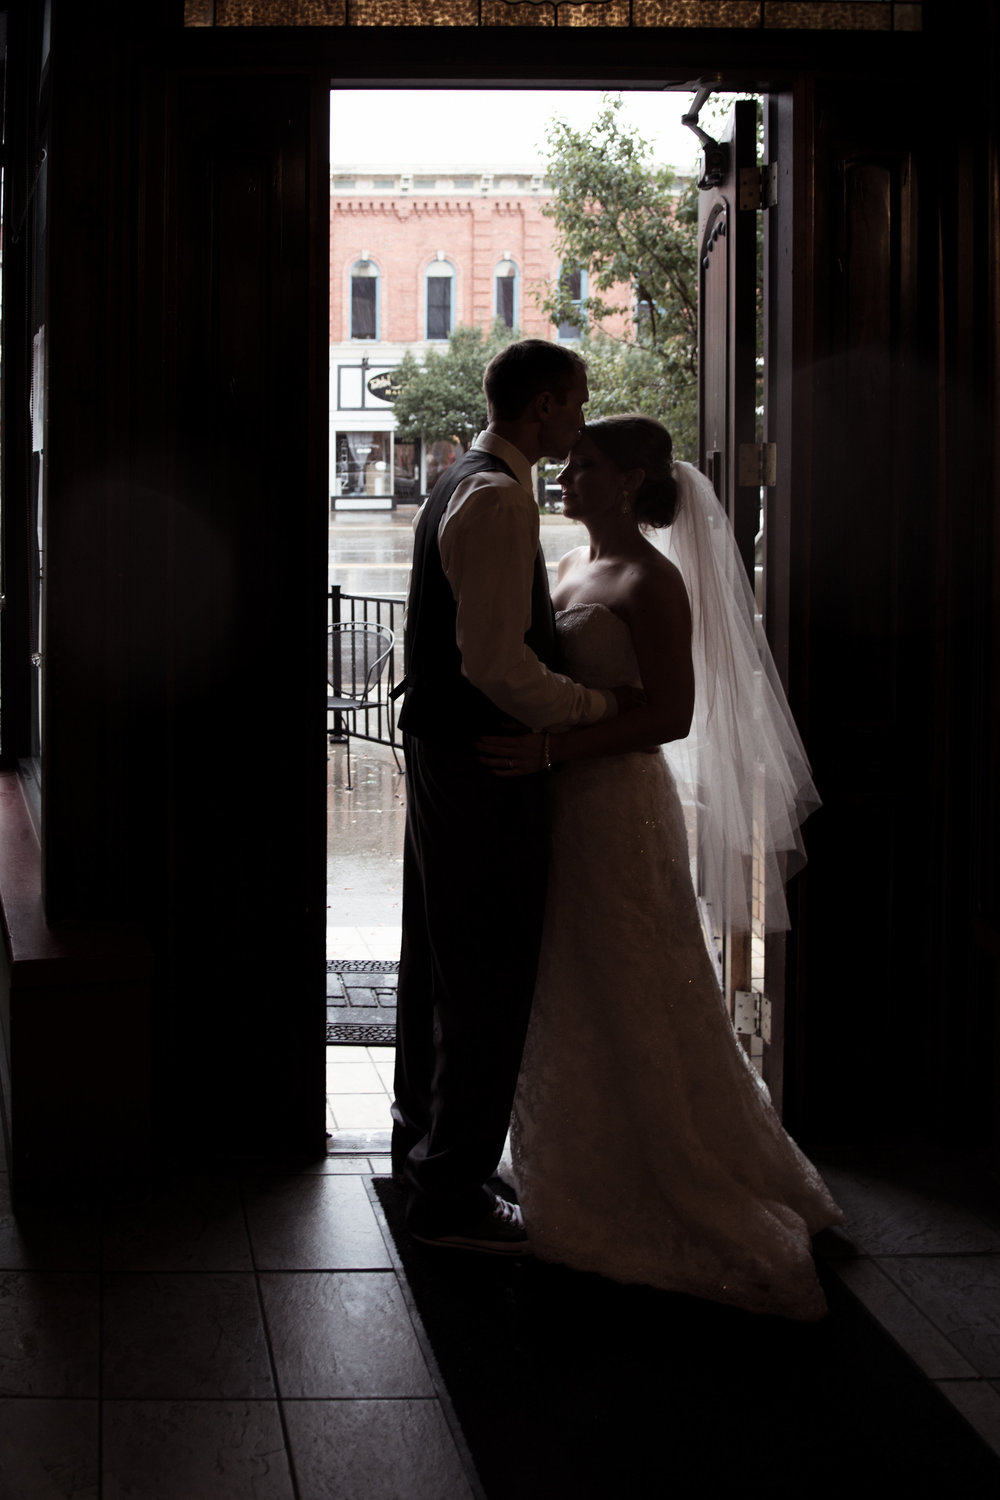 leann_sol_wedding (369 of 602).jpg